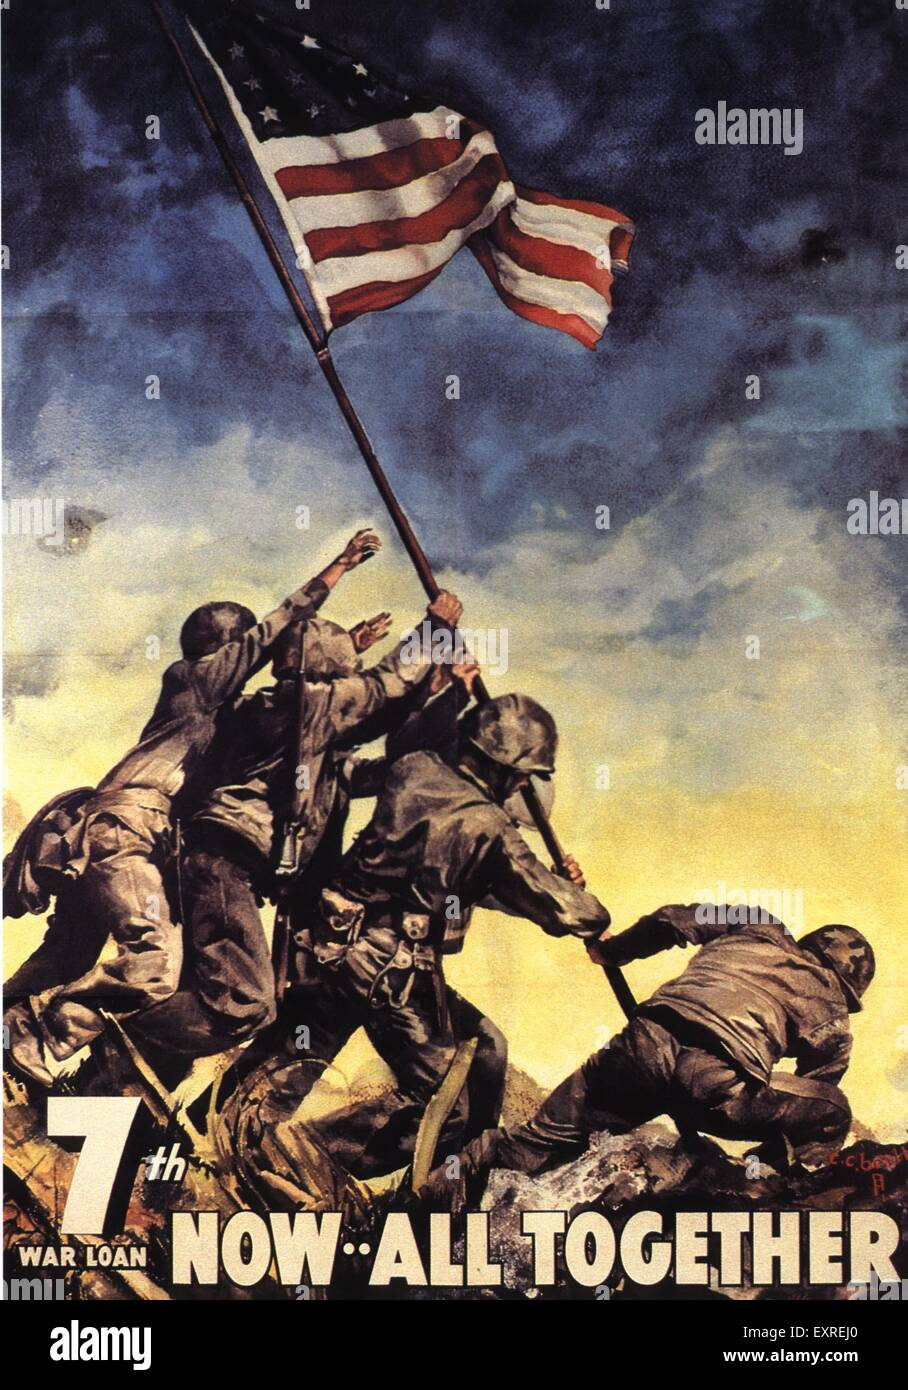 1940s USA Propaganda WW2 Poster Stock Photo